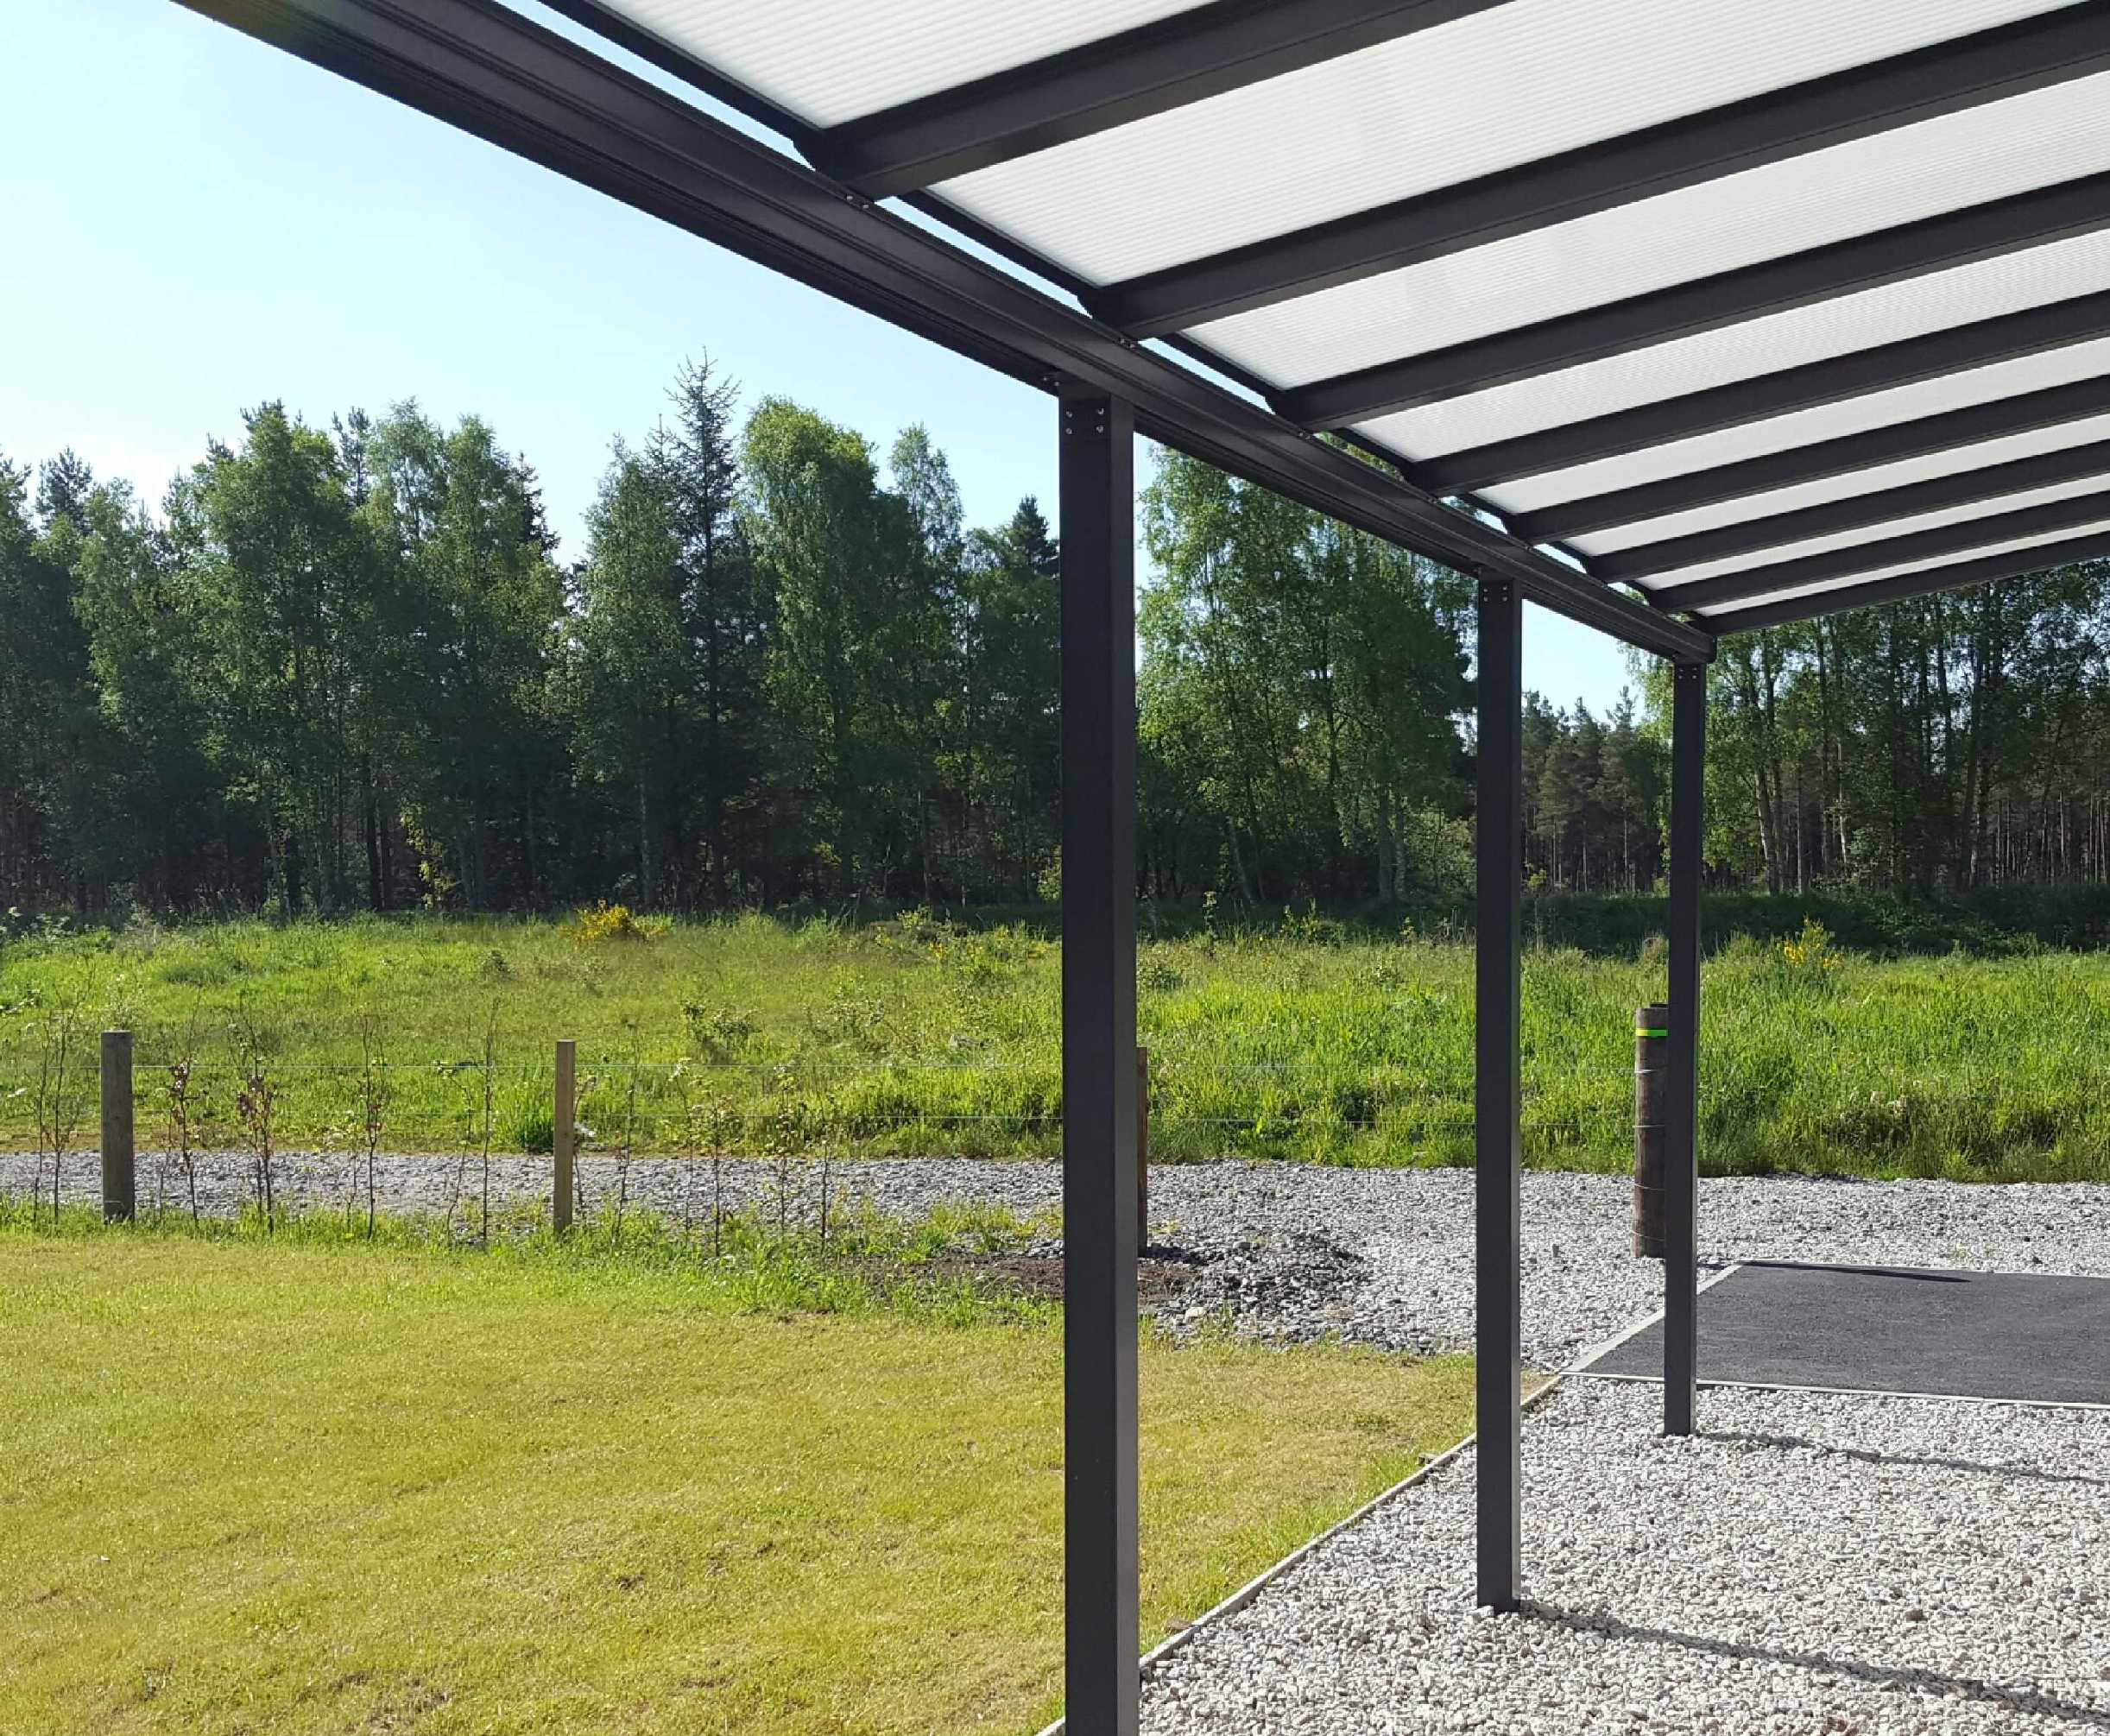 Omega Smart Lean-To Canopy, Anthracite Grey, UNGLAZED for 6mm Glazing - 2.8m (W) x 1.5m (P), (2) Supporting Posts